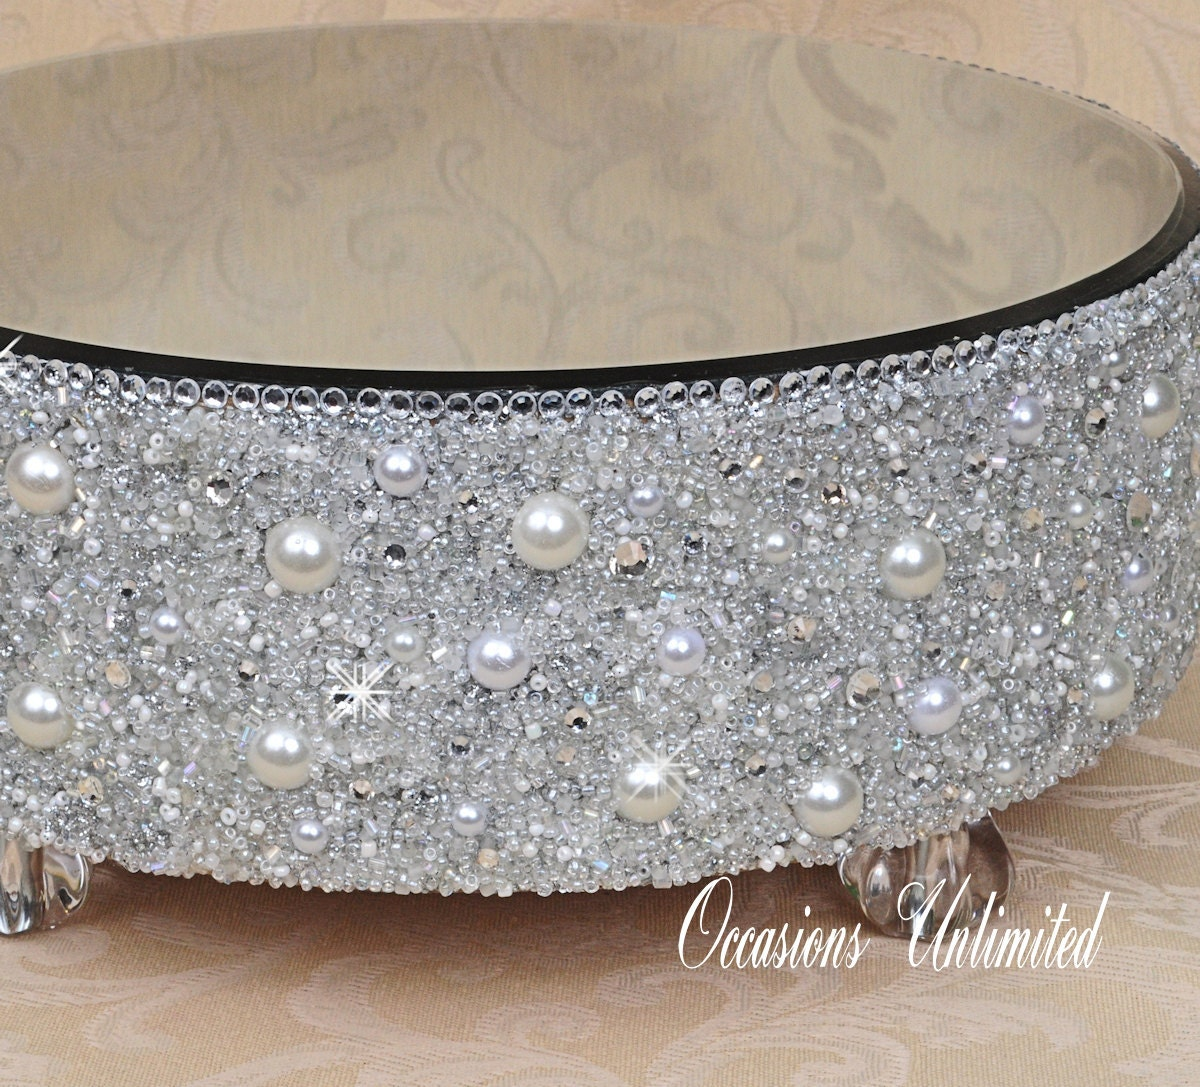 Love the bling...would also be pretty with a satin ribbon instead ...